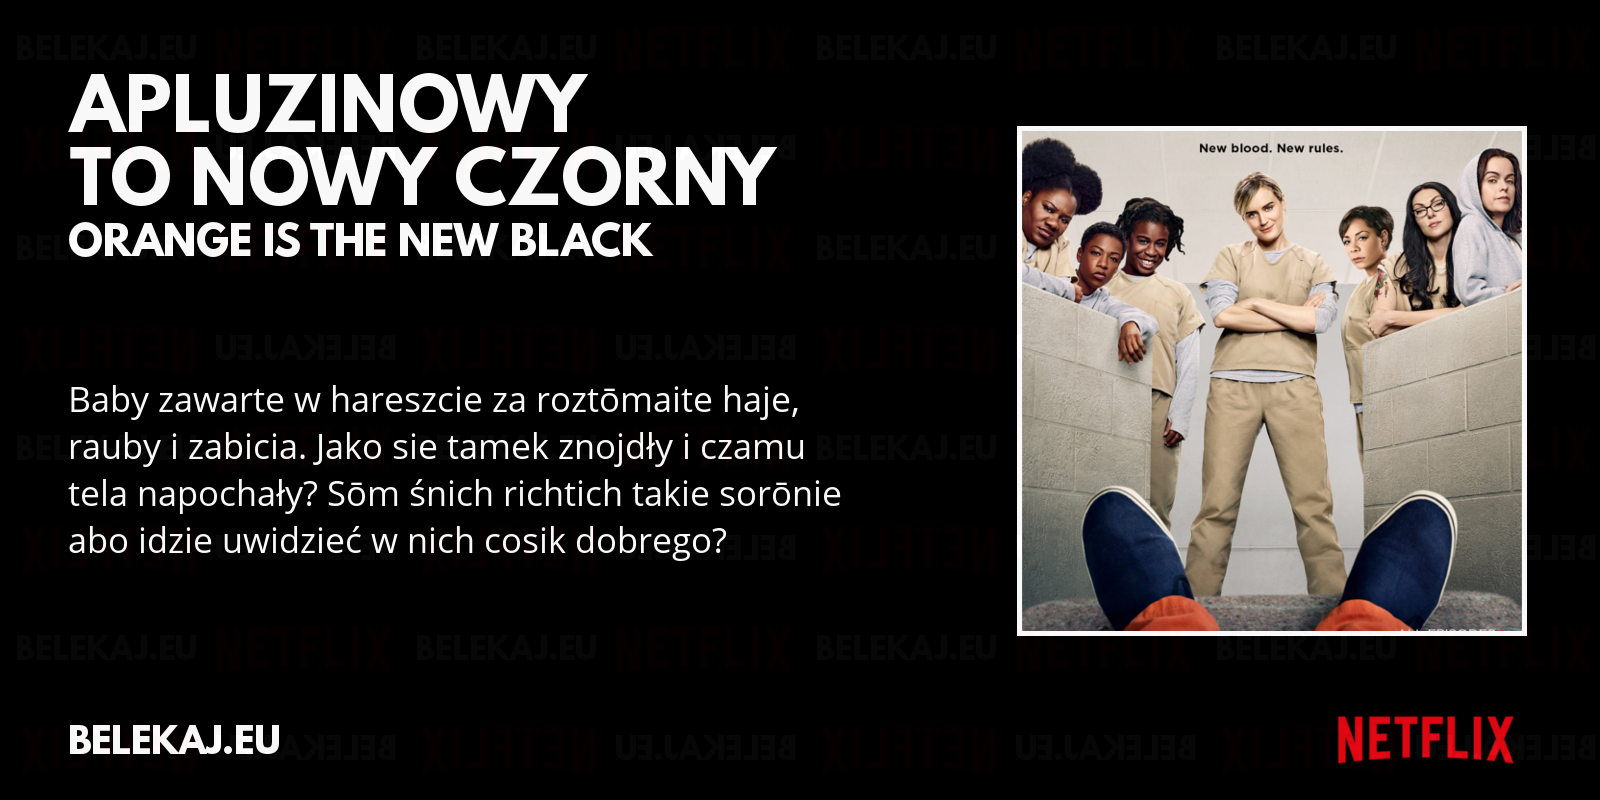 Orange is the new black - Netflix po śląsku